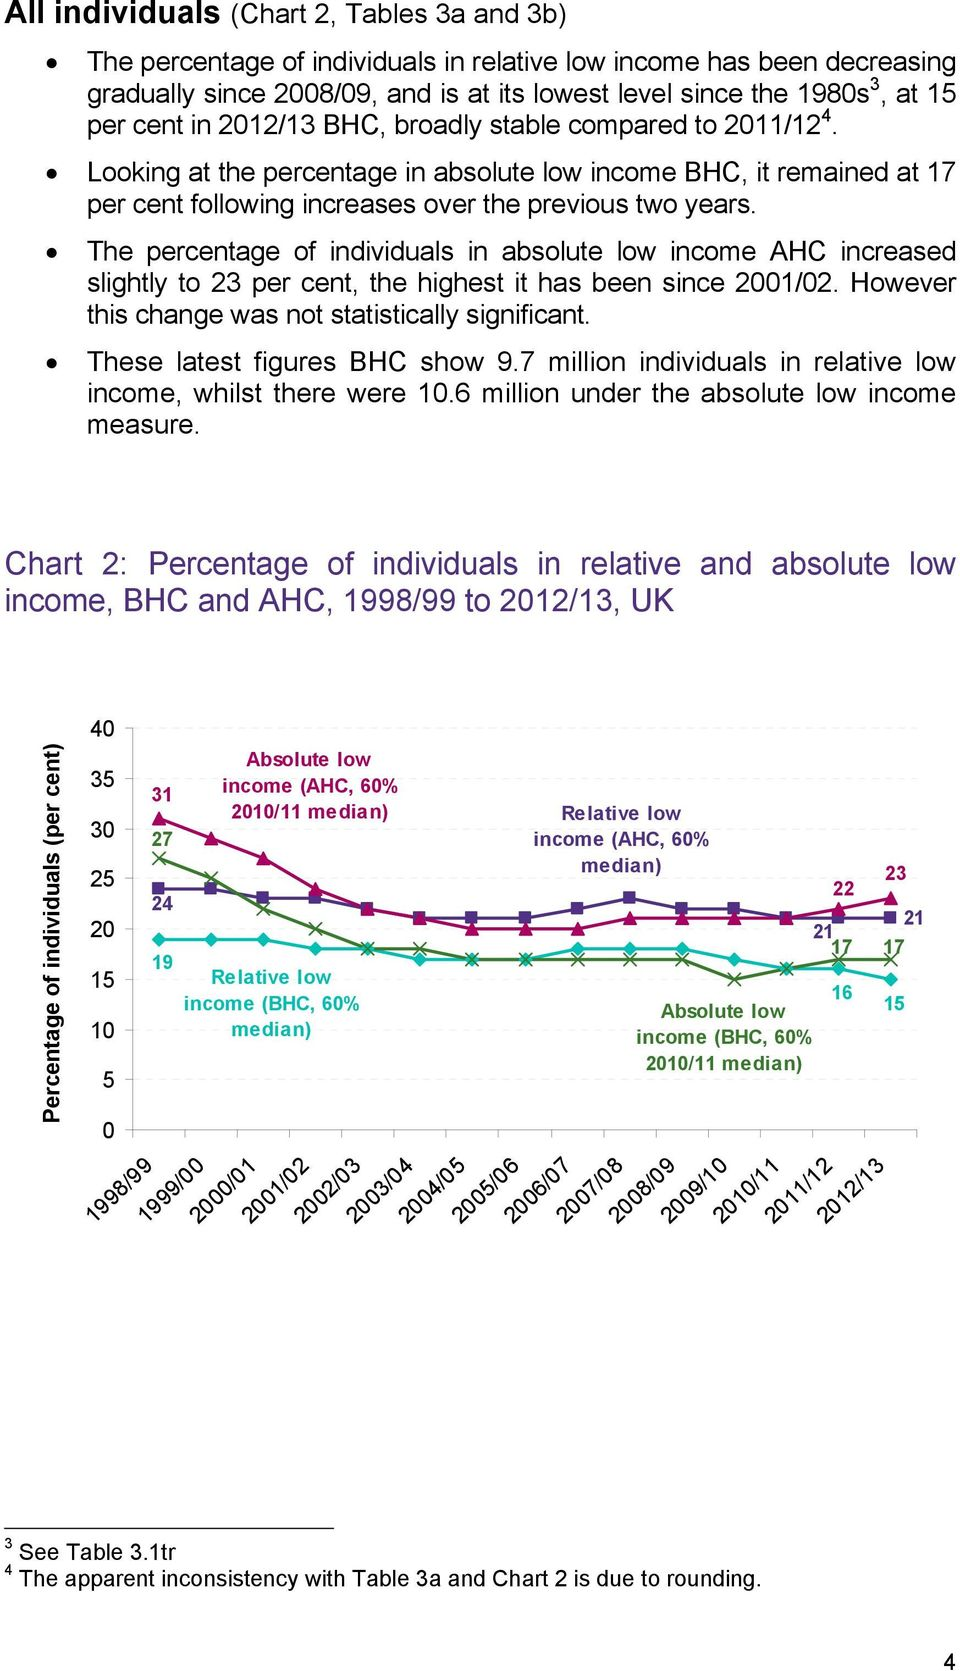 The percentage of individuals in absolute low income AHC increased slightly to 23 per cent, the highest it has been since 2001/02. However this change was not statistically significant.